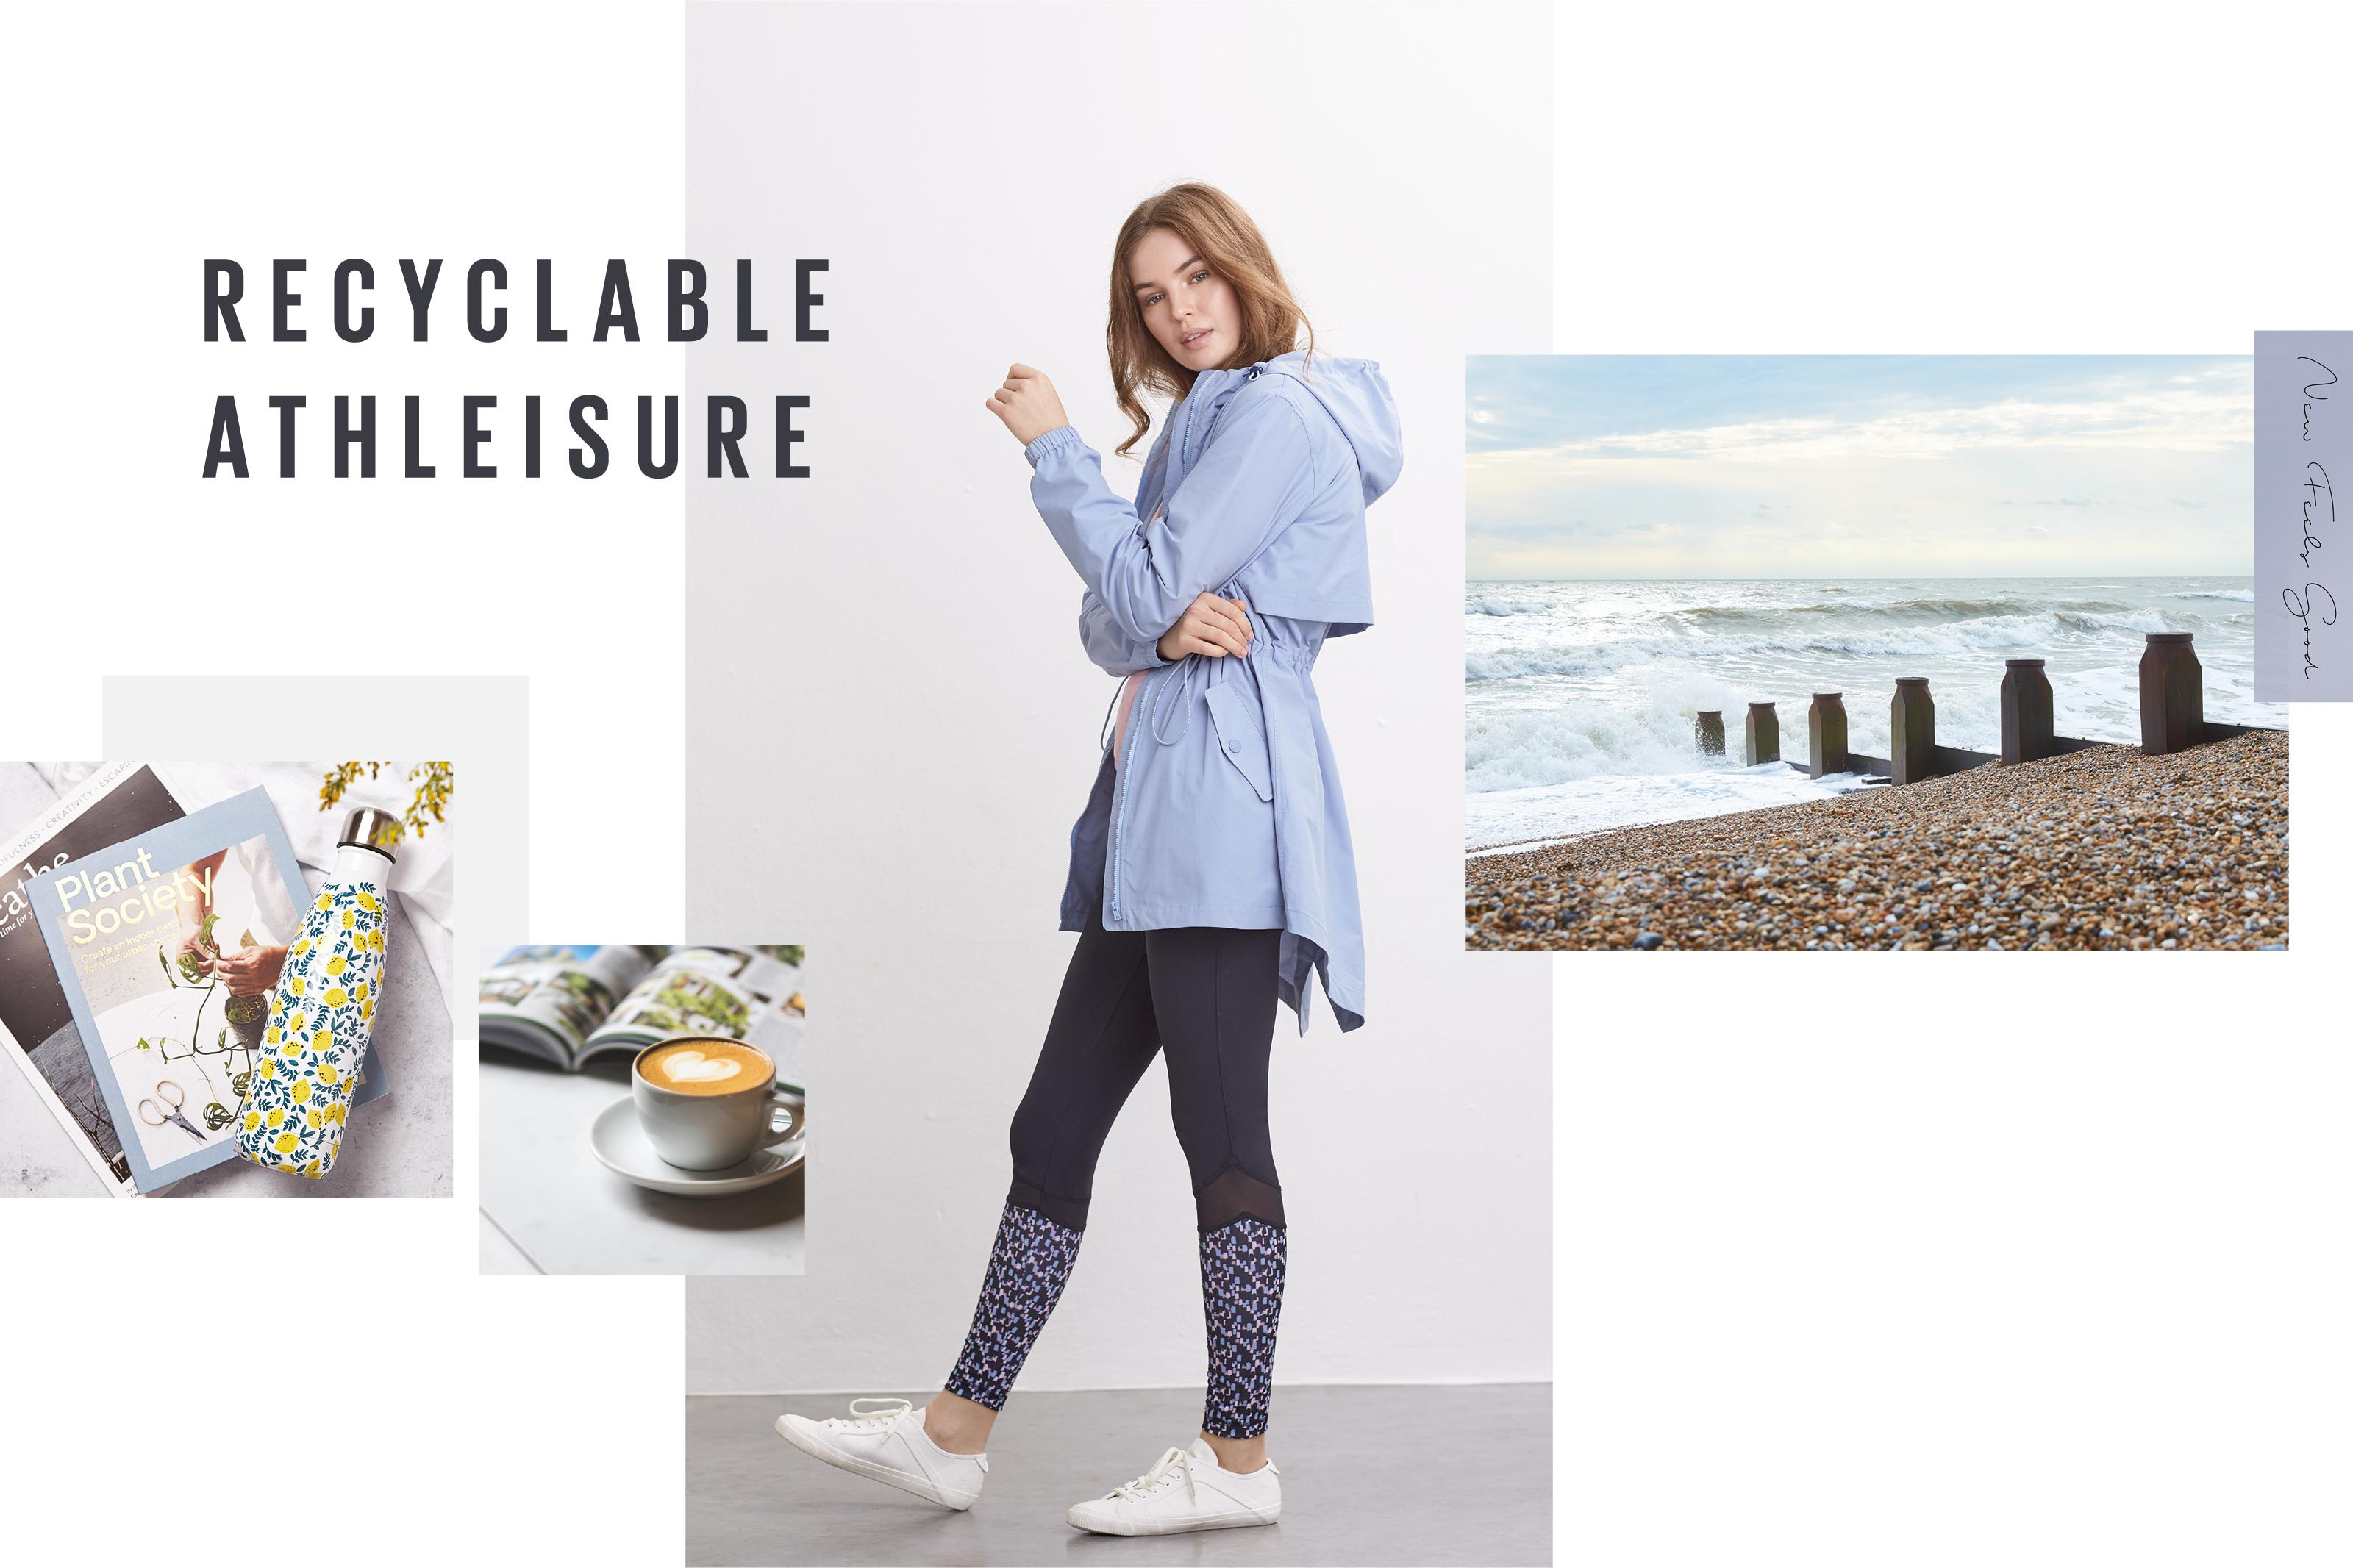 Four images of different sizes showing a picture of a beach, a female model wearing athleisure clothes and a cup of coffee.